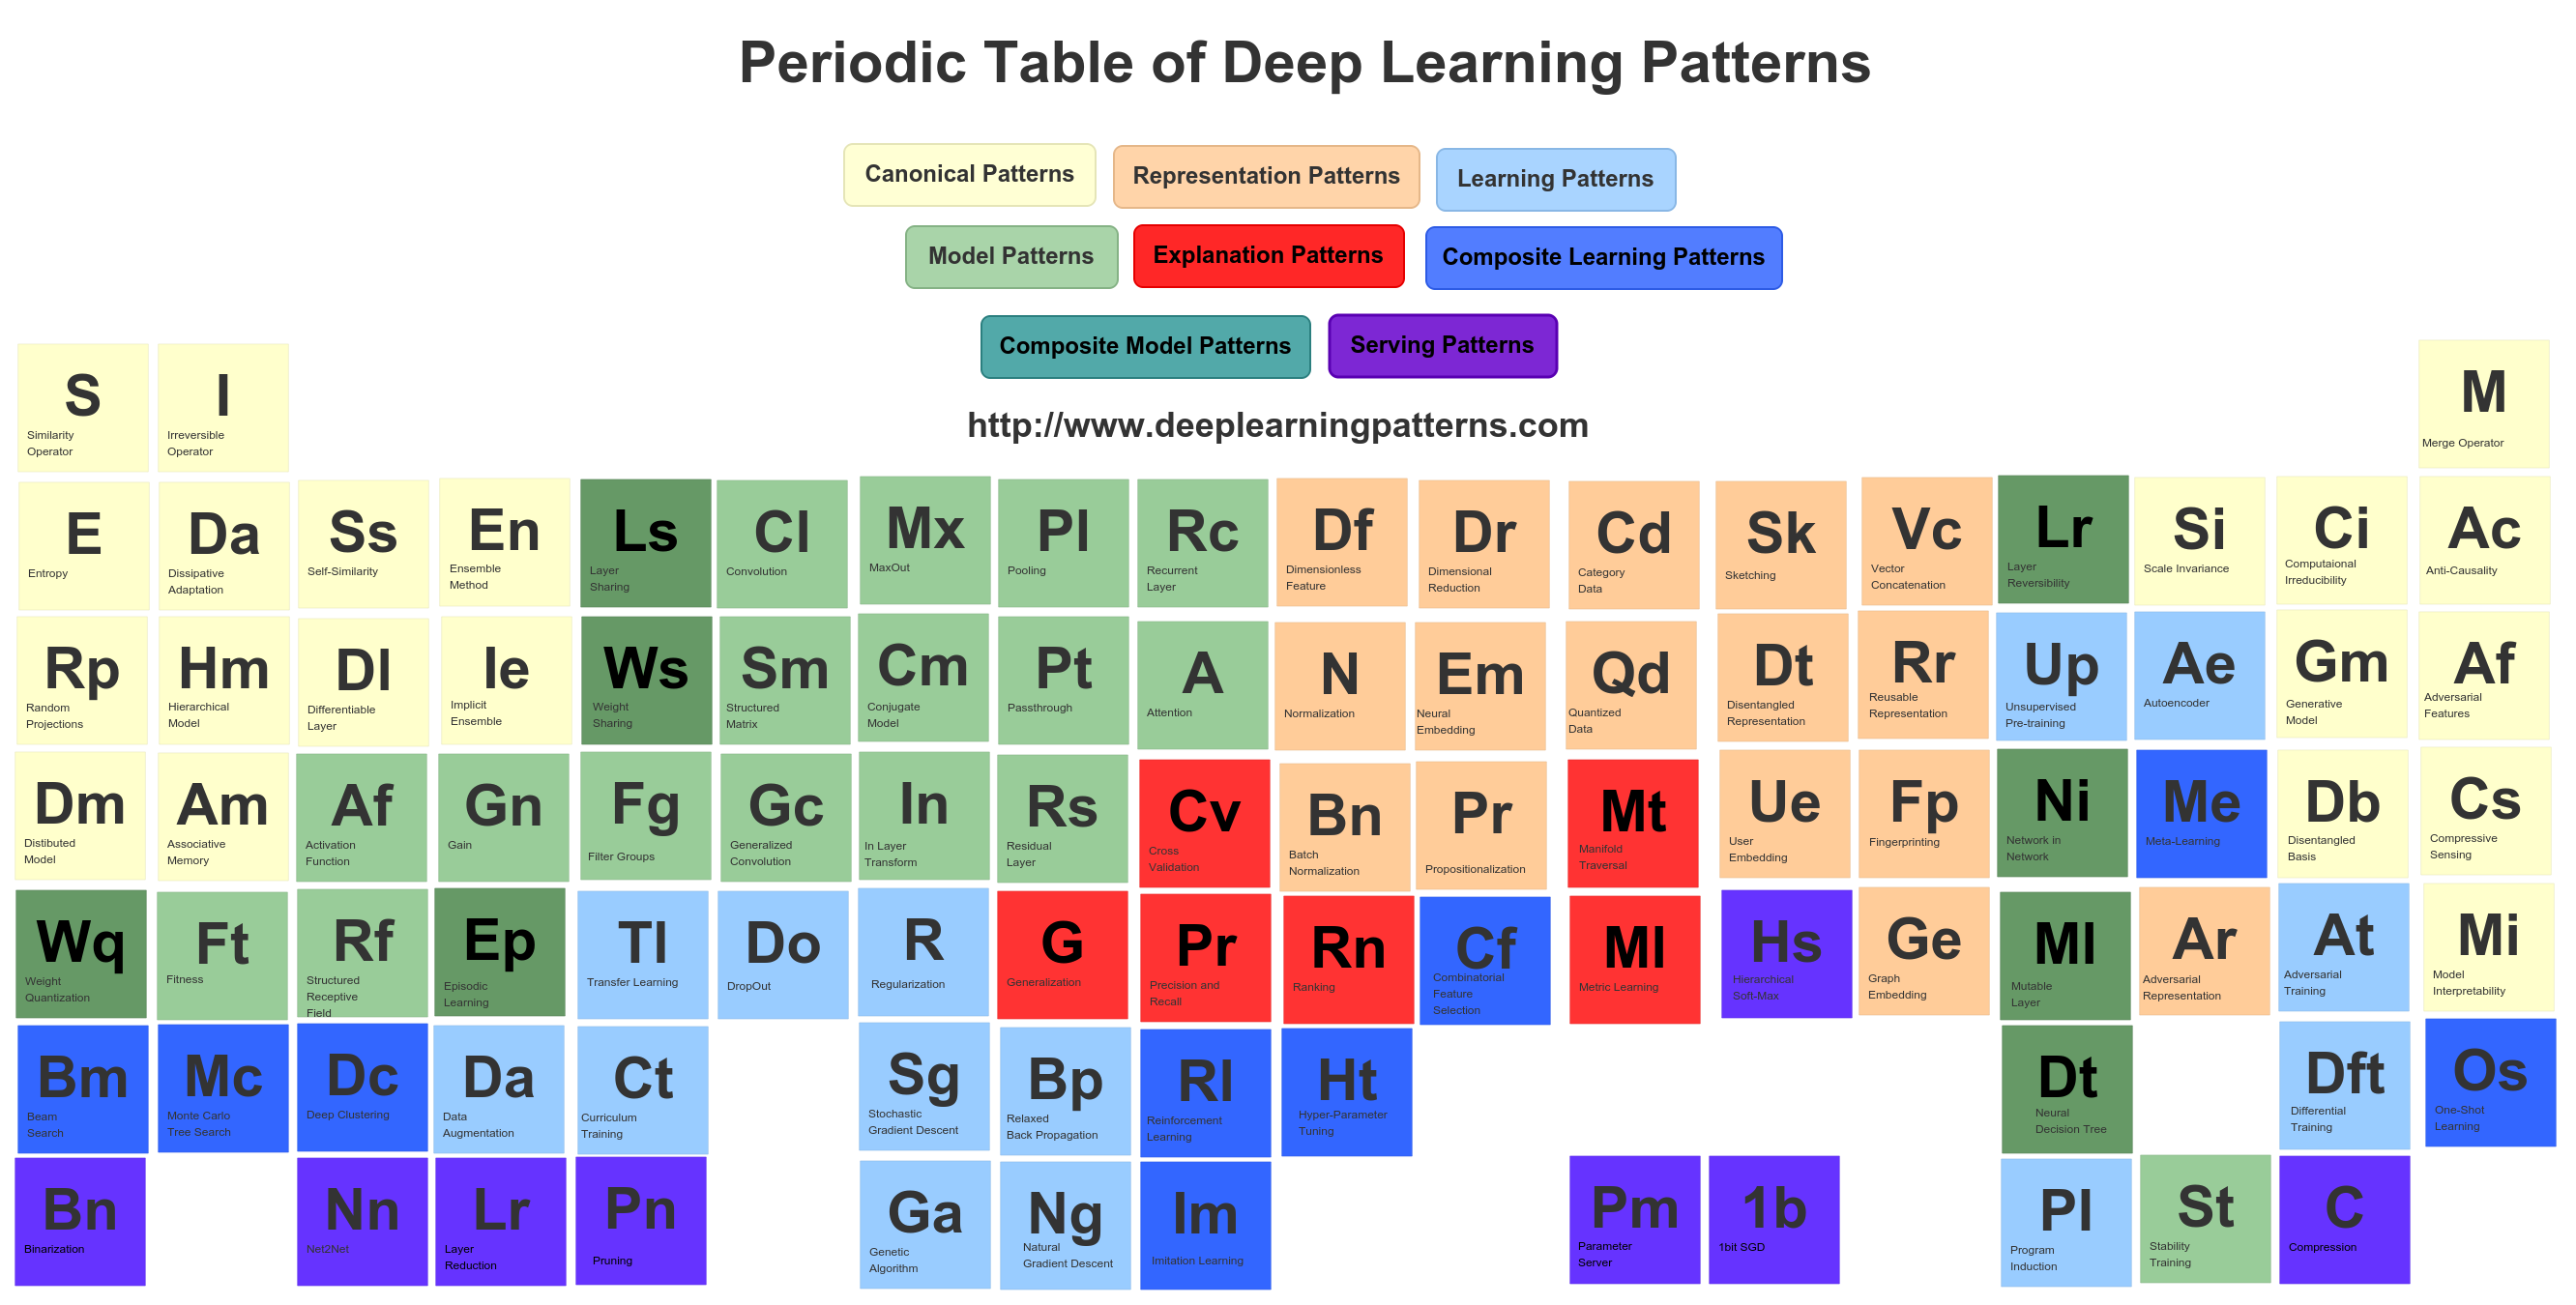 Httpdeeplearningpatternsdokupoverview data note massive refactoring in progress design patterns for deep learning architectures gamestrikefo Choice Image